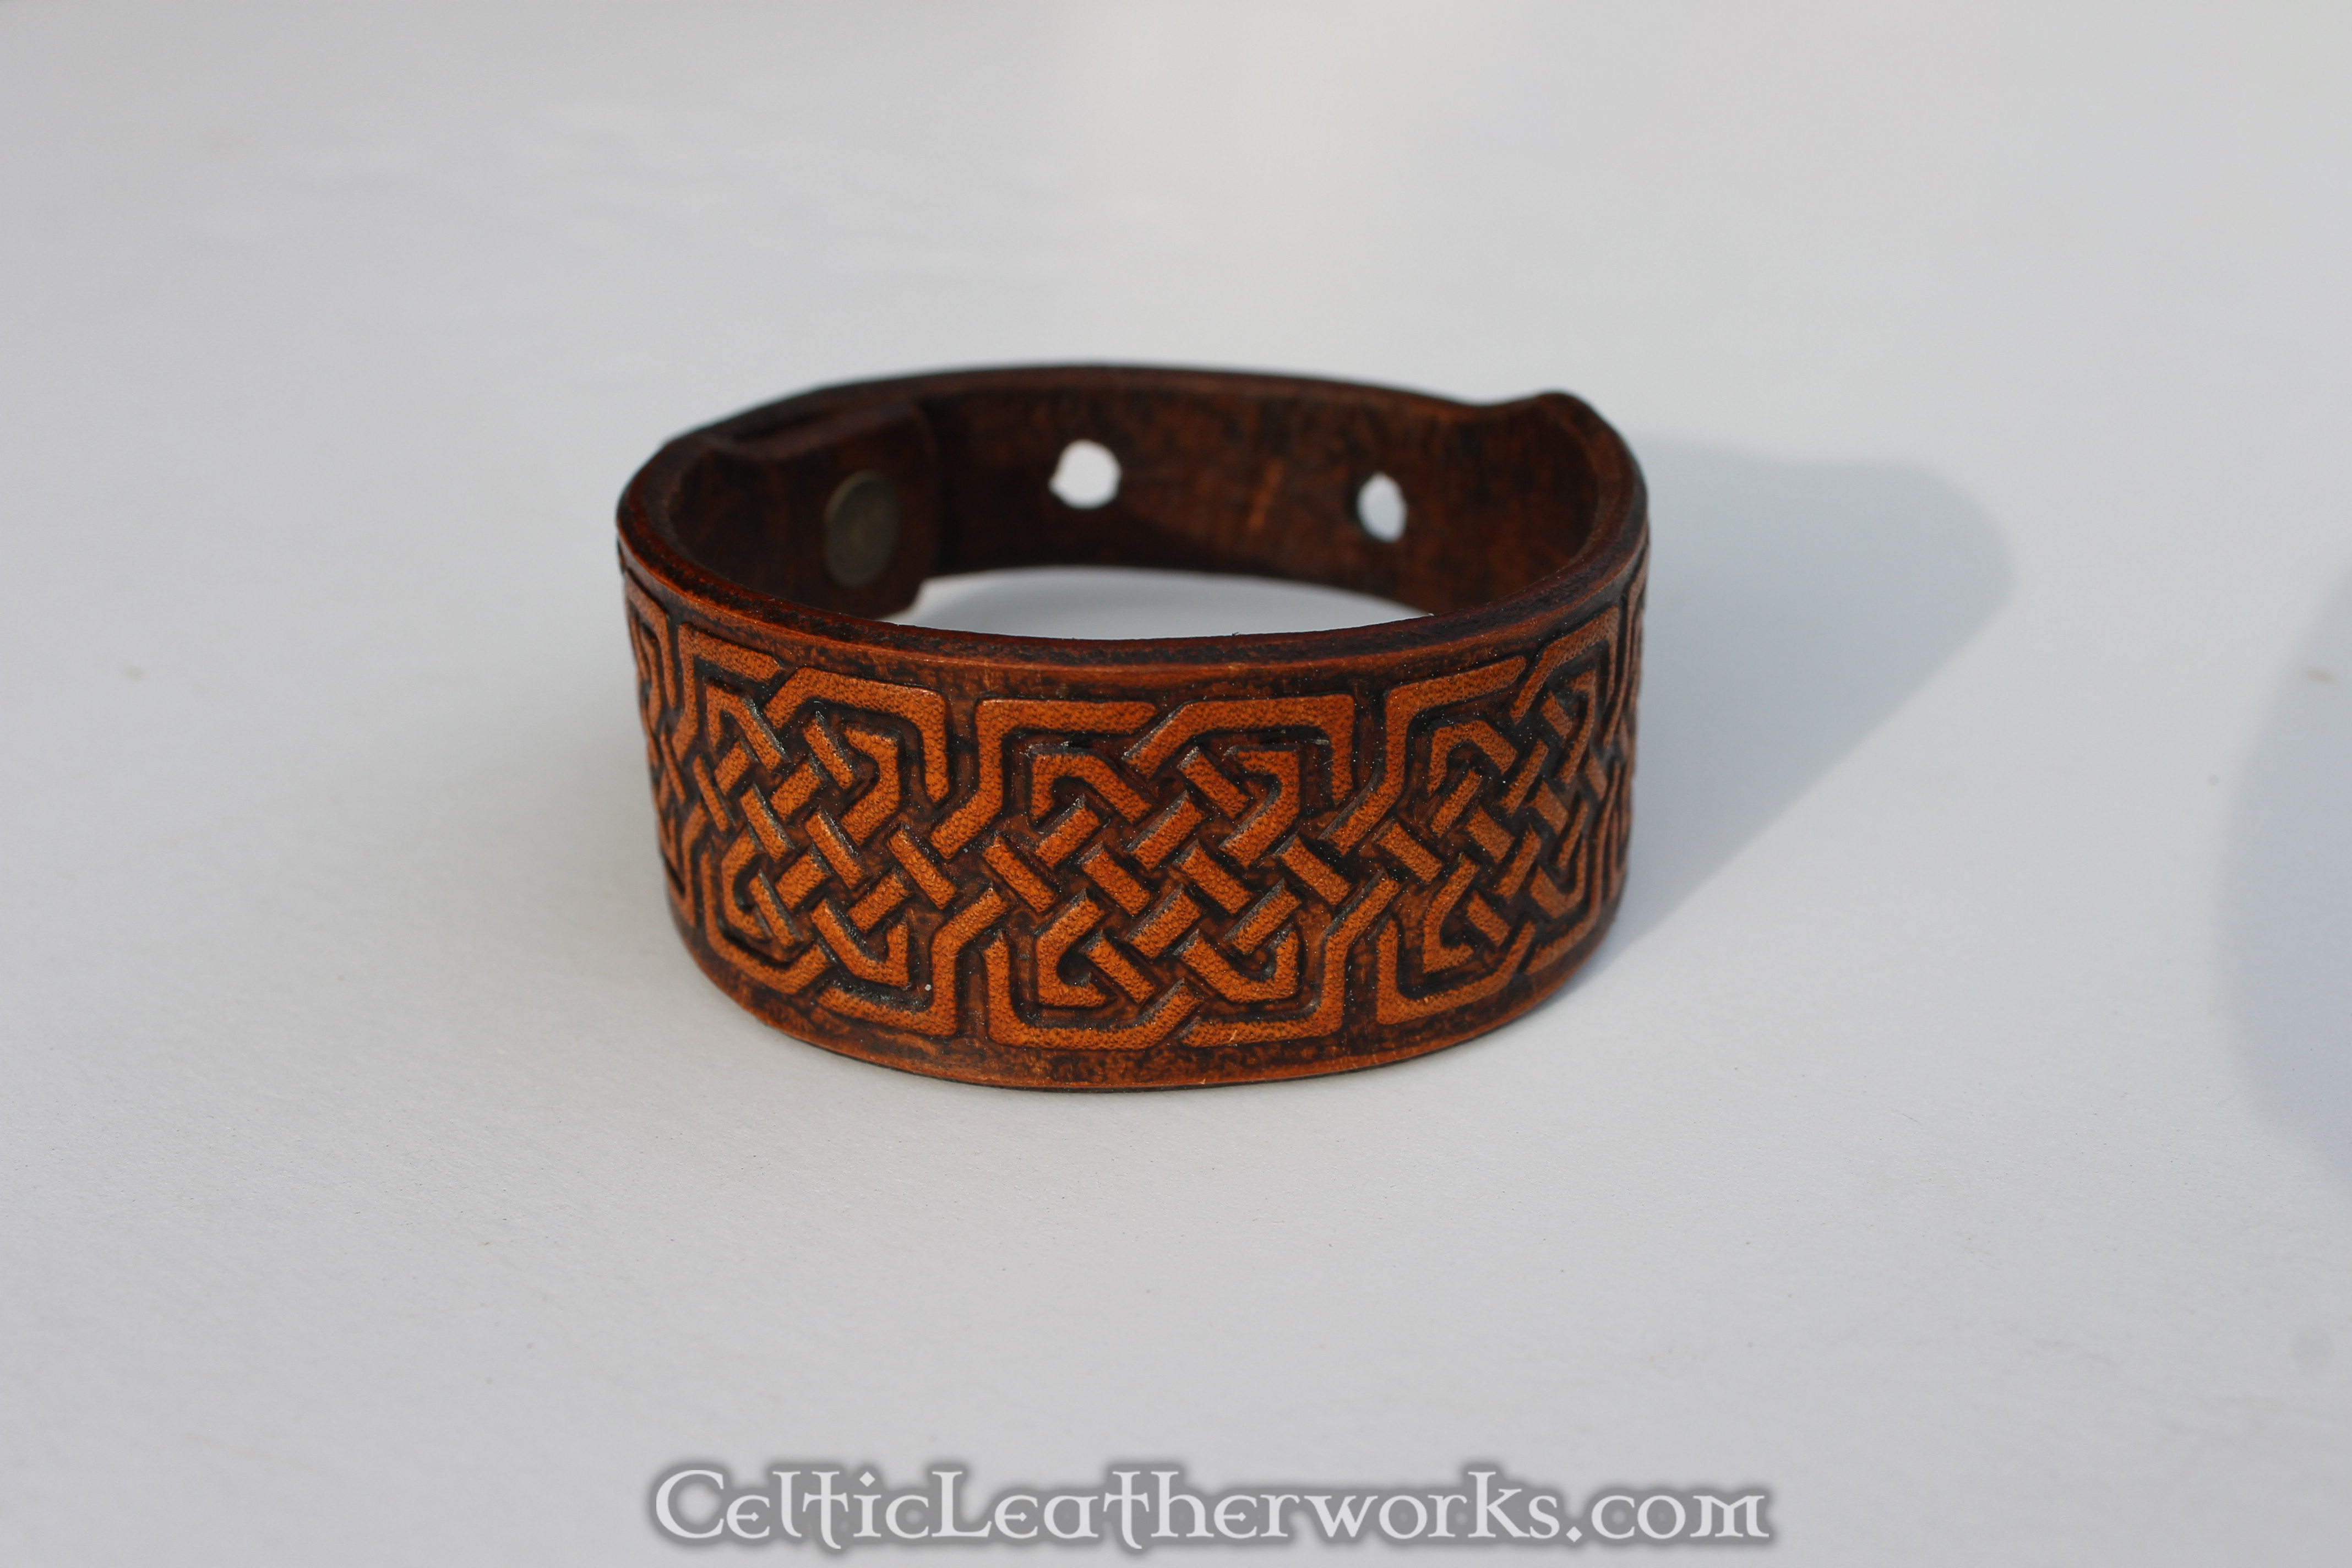 Squared Knot Celtic Leather Cuff